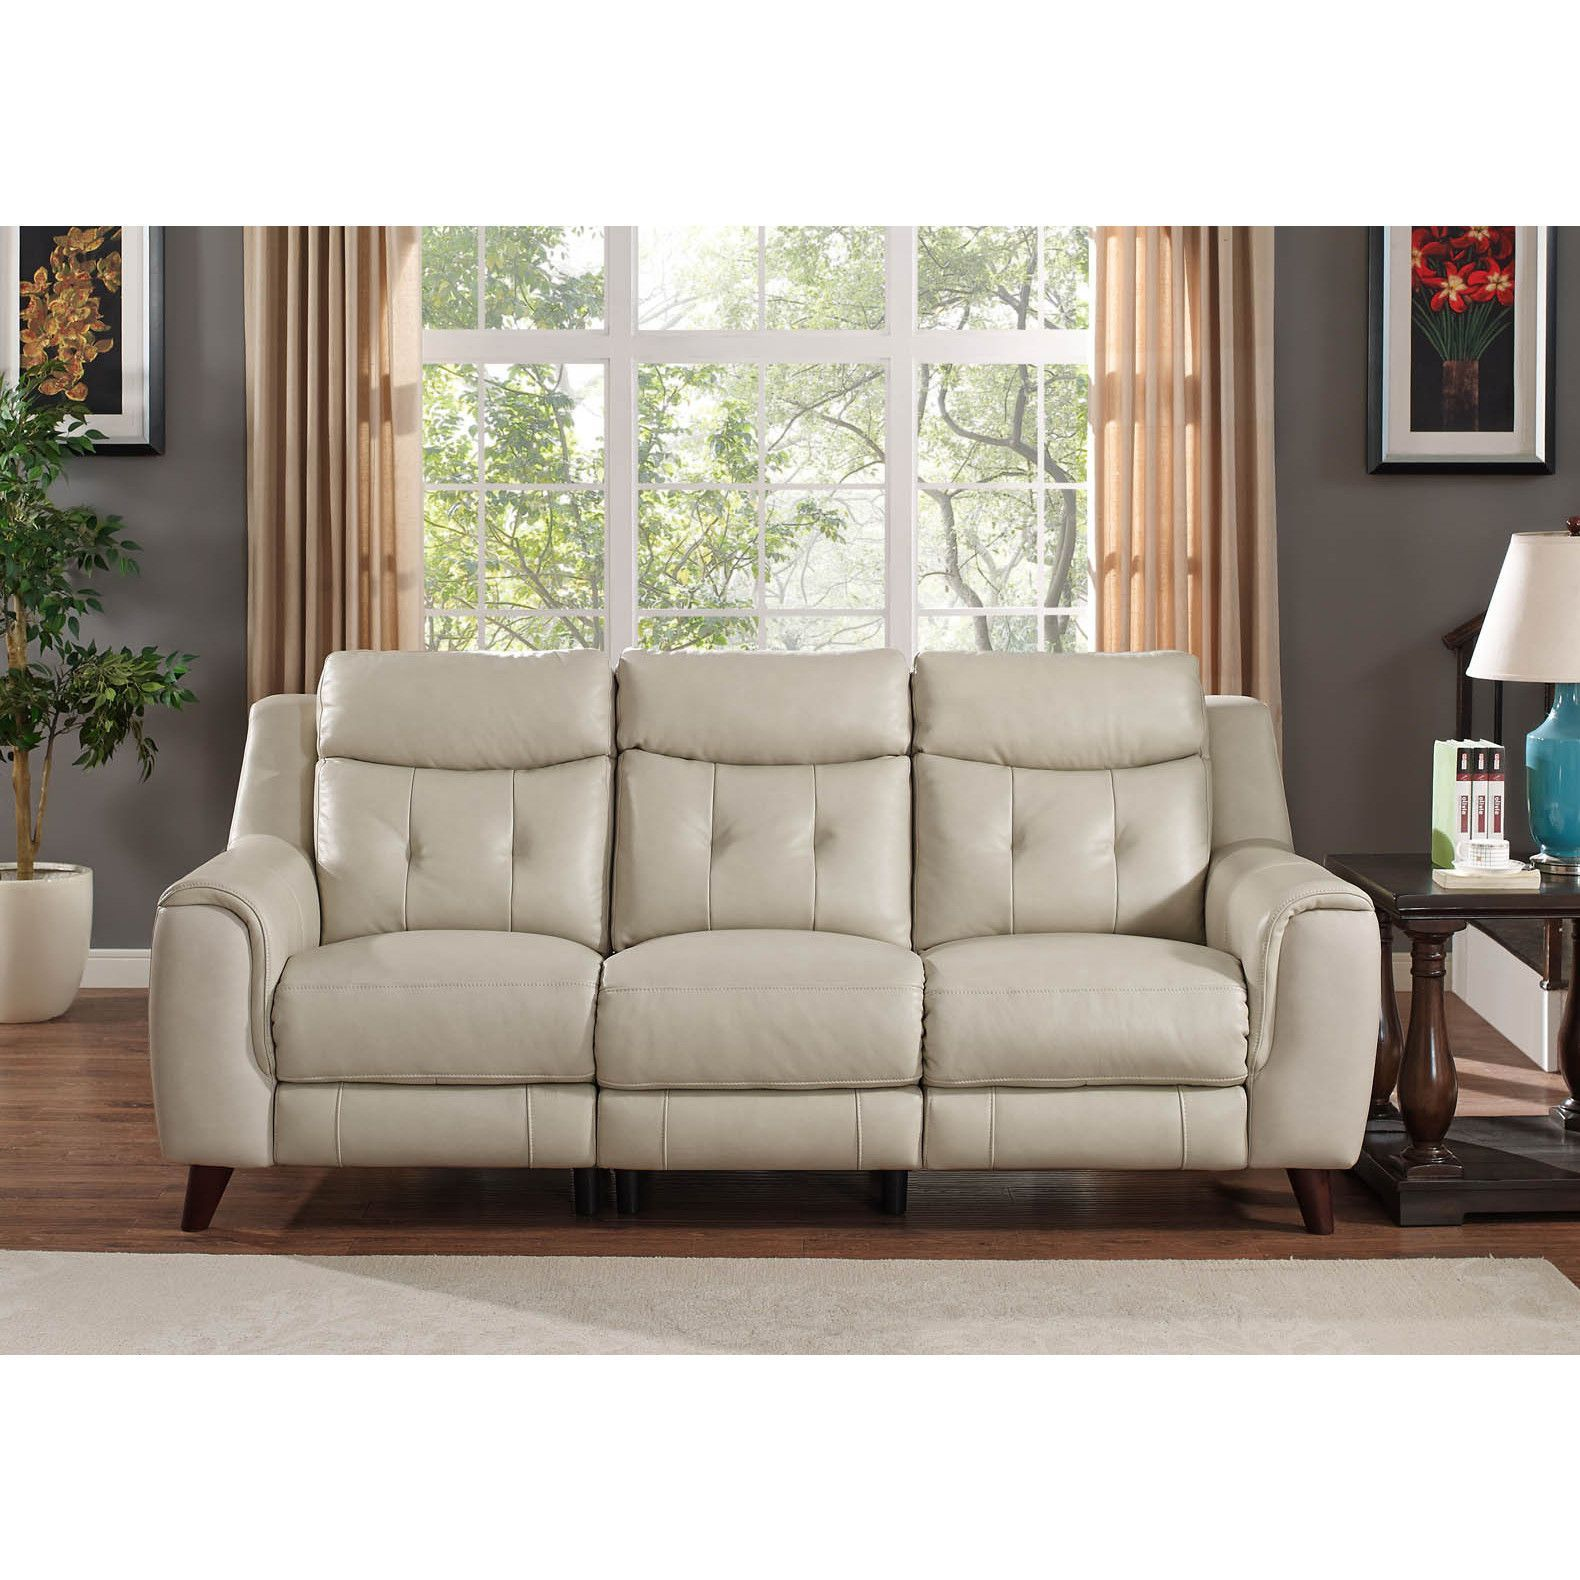 Stressless Cream Sofa Cream Leather Recliner Sofa Stressless Buckingham 3 Seat